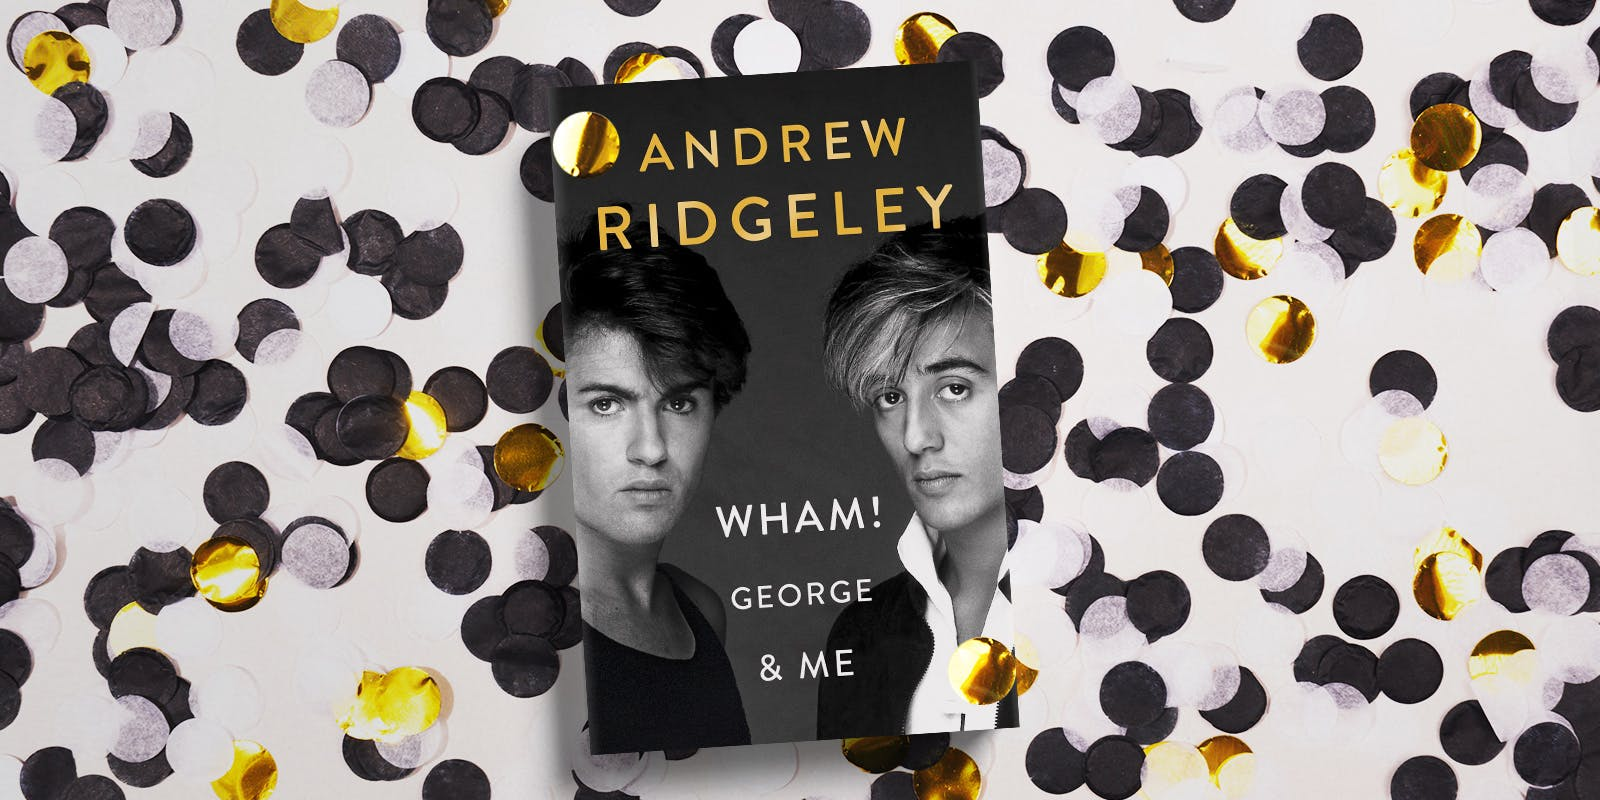 WHAM!: four facts